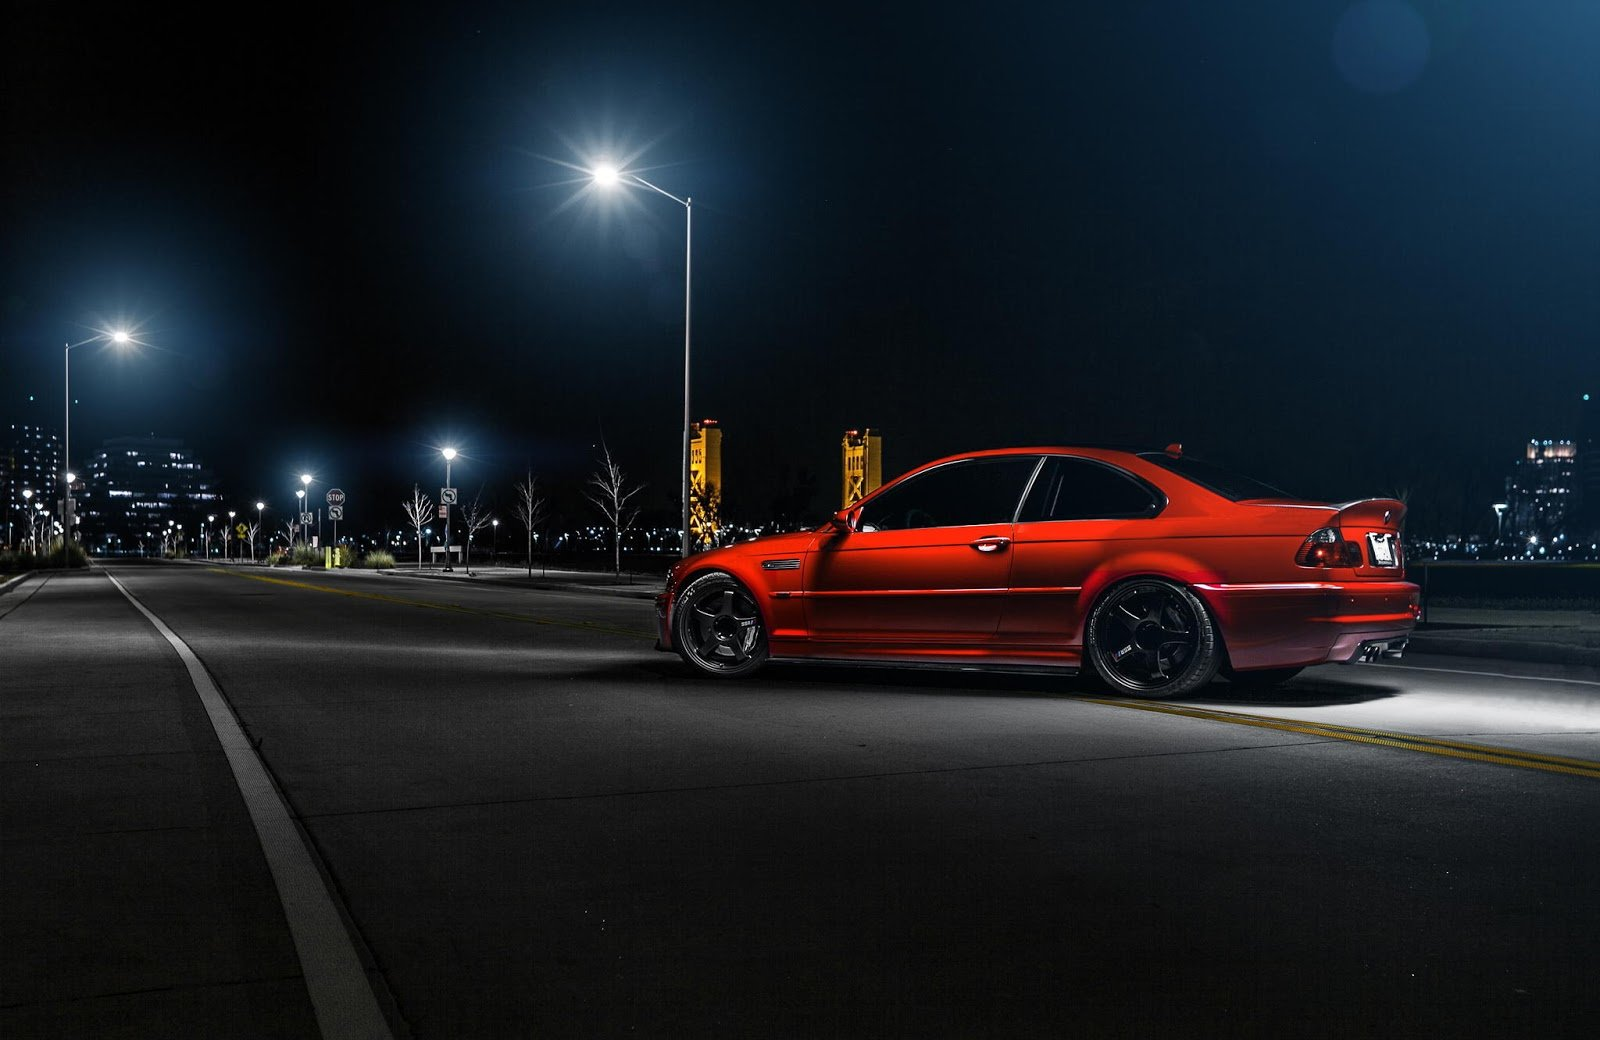 Latest 30 Bmw E46 Wallpapers Car Enthusiast Wallpapers Free Download